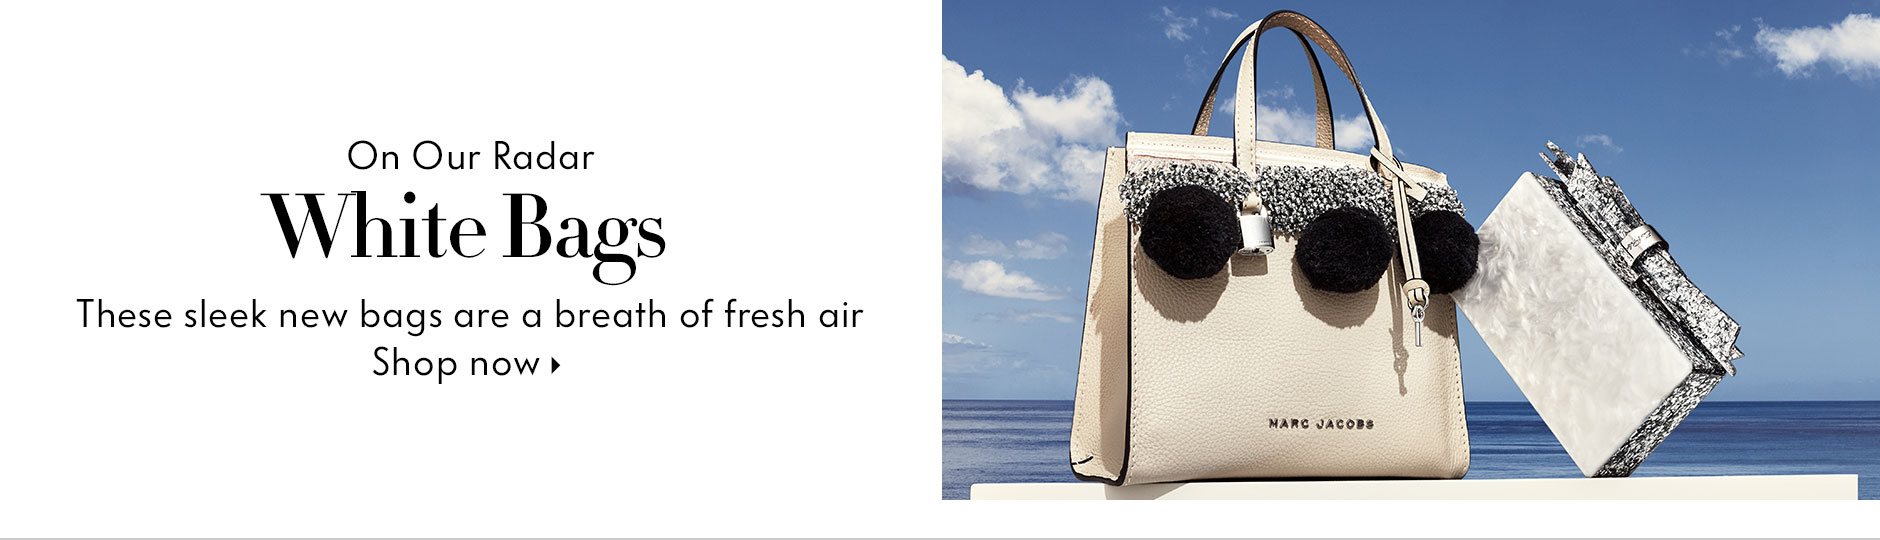 On our radar - White bags, these sleek new bags are a breath of fresh air